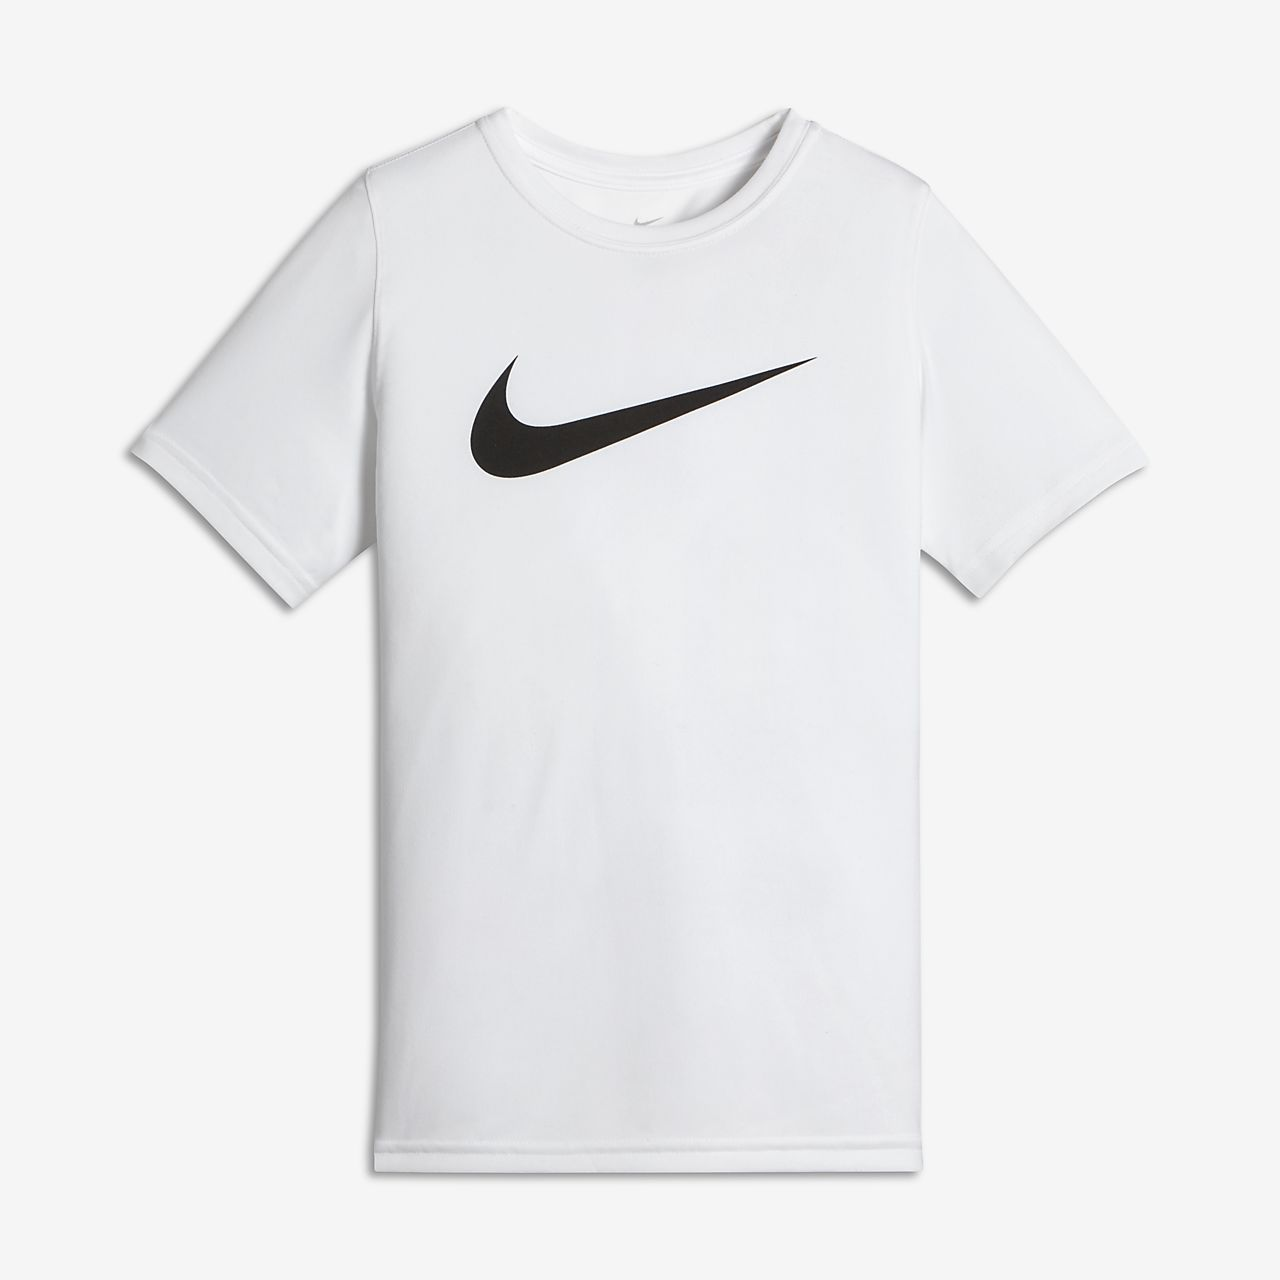 ae2d2fdd0aa8 Nike Dri-FIT Big Kids  (Boys ) Training T-Shirt. Nike.com